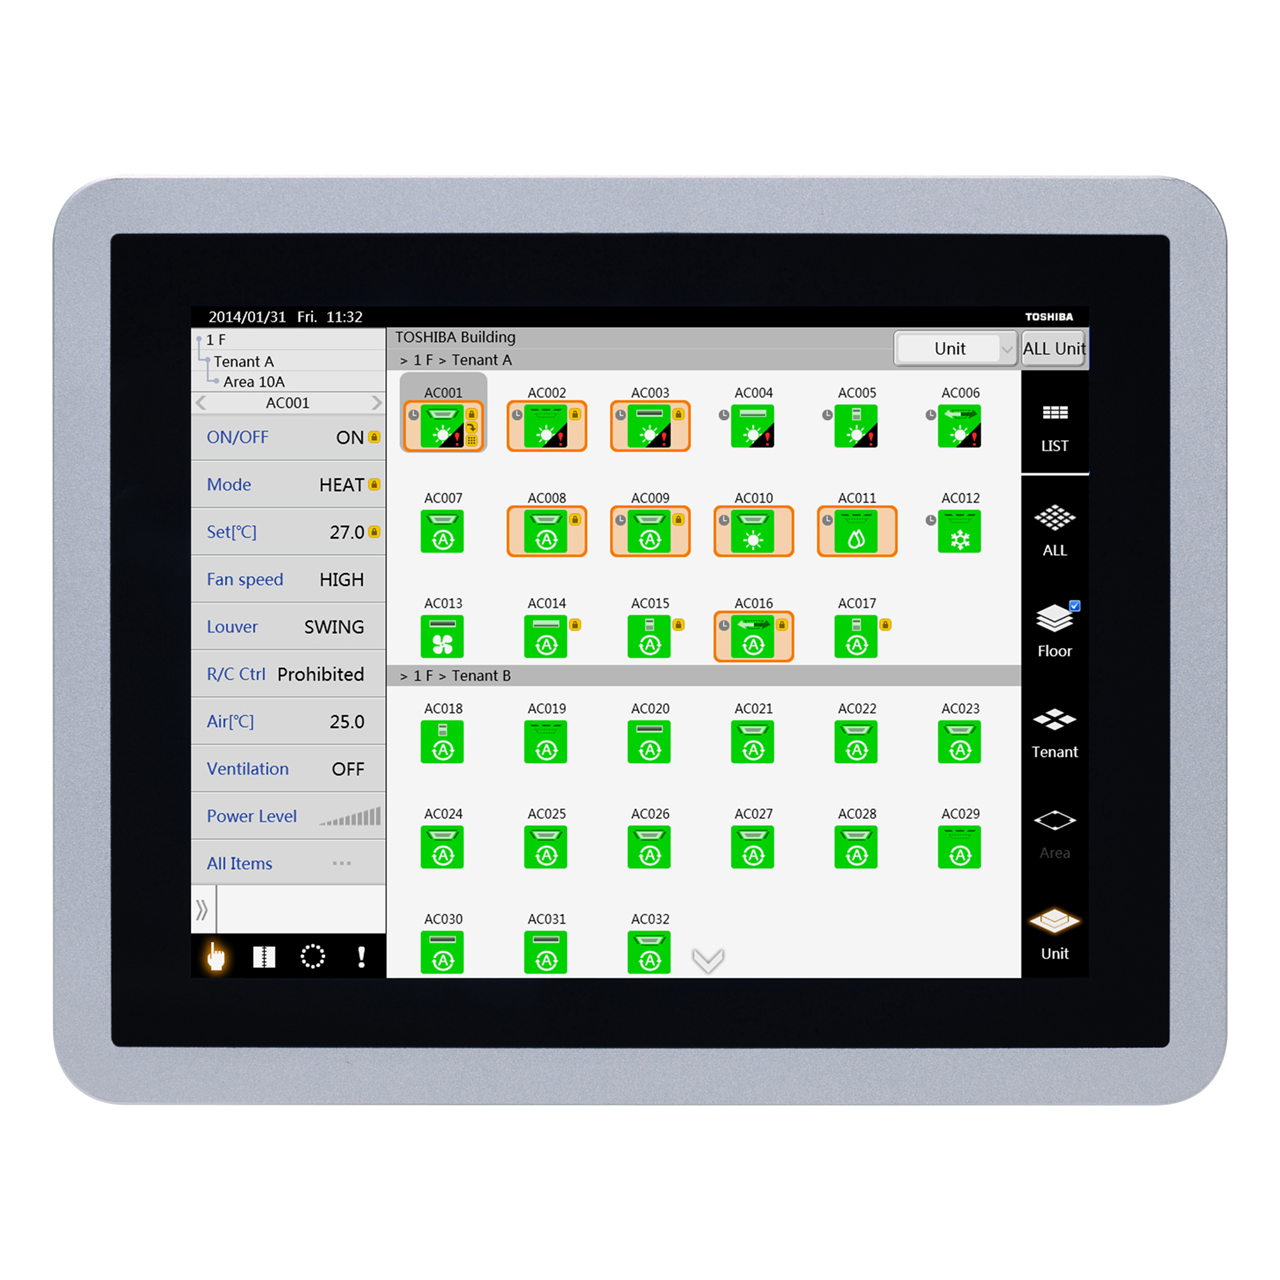 carrier-BMS-CT512OUL-vrf-touchscreen-central-controller